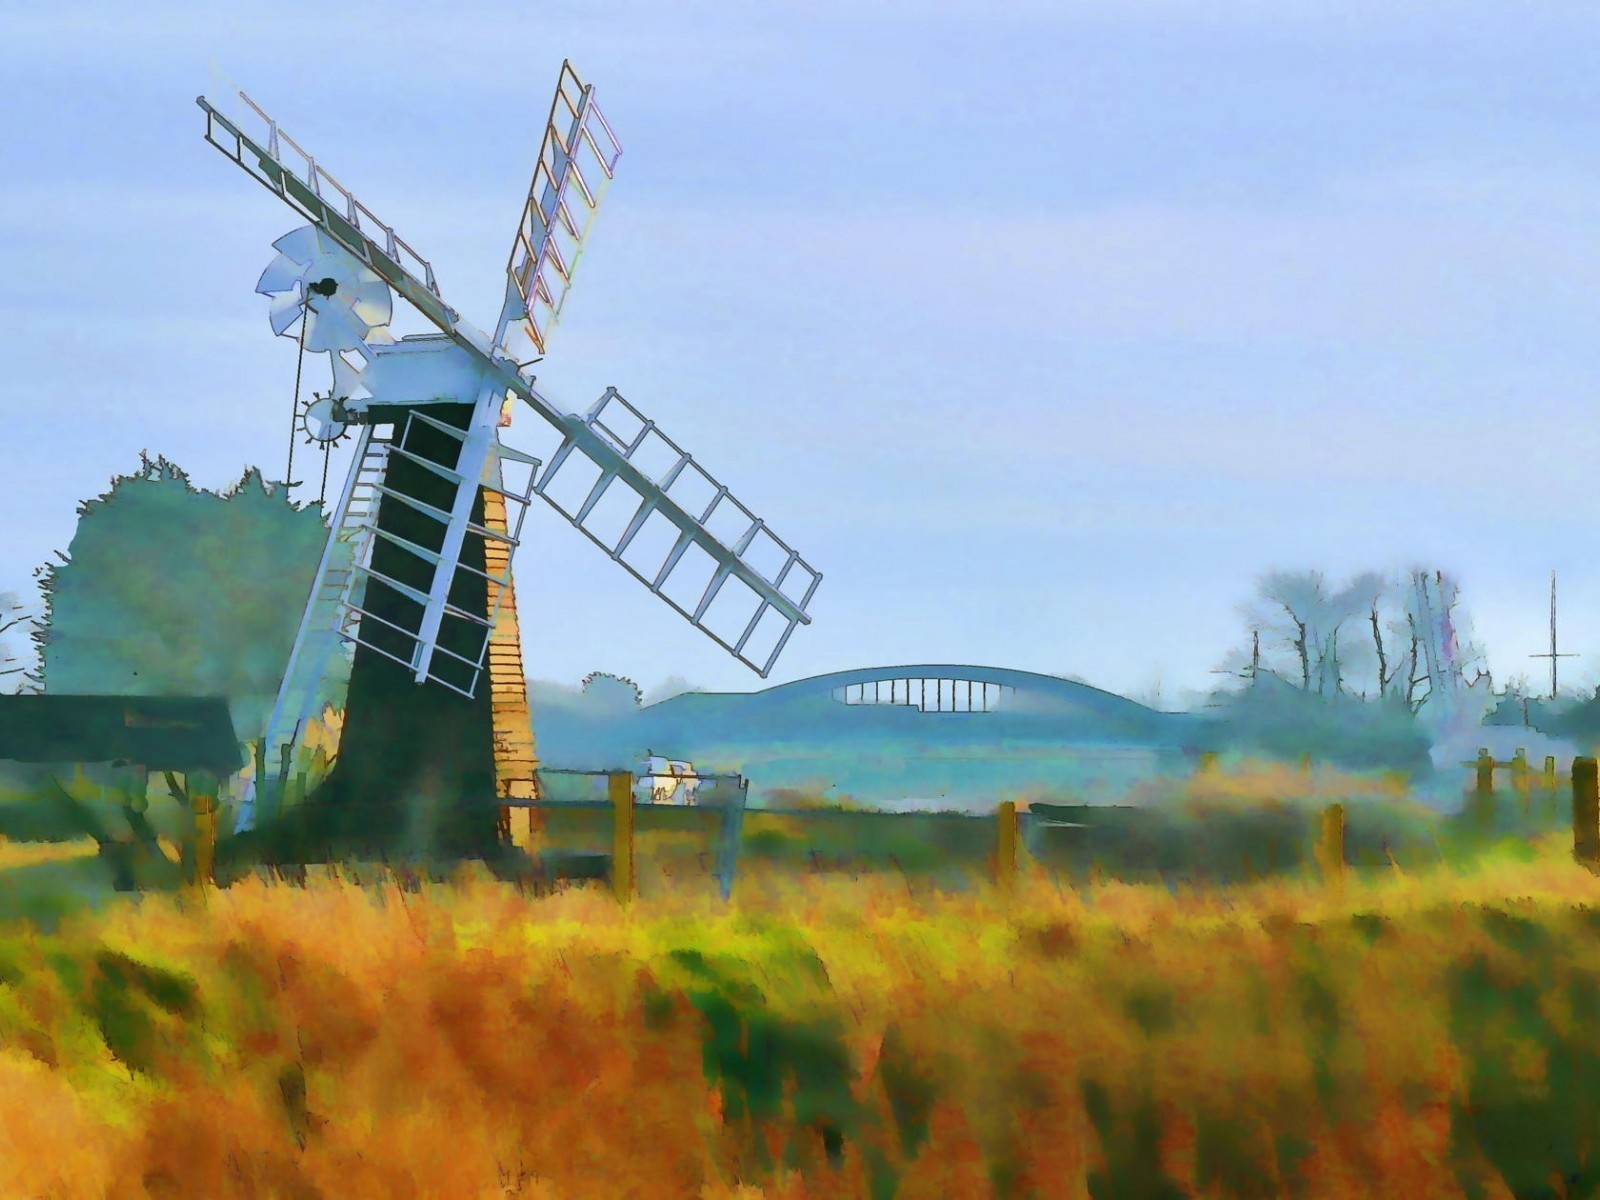 Windmill Painting for 1600 x 1200 resolution